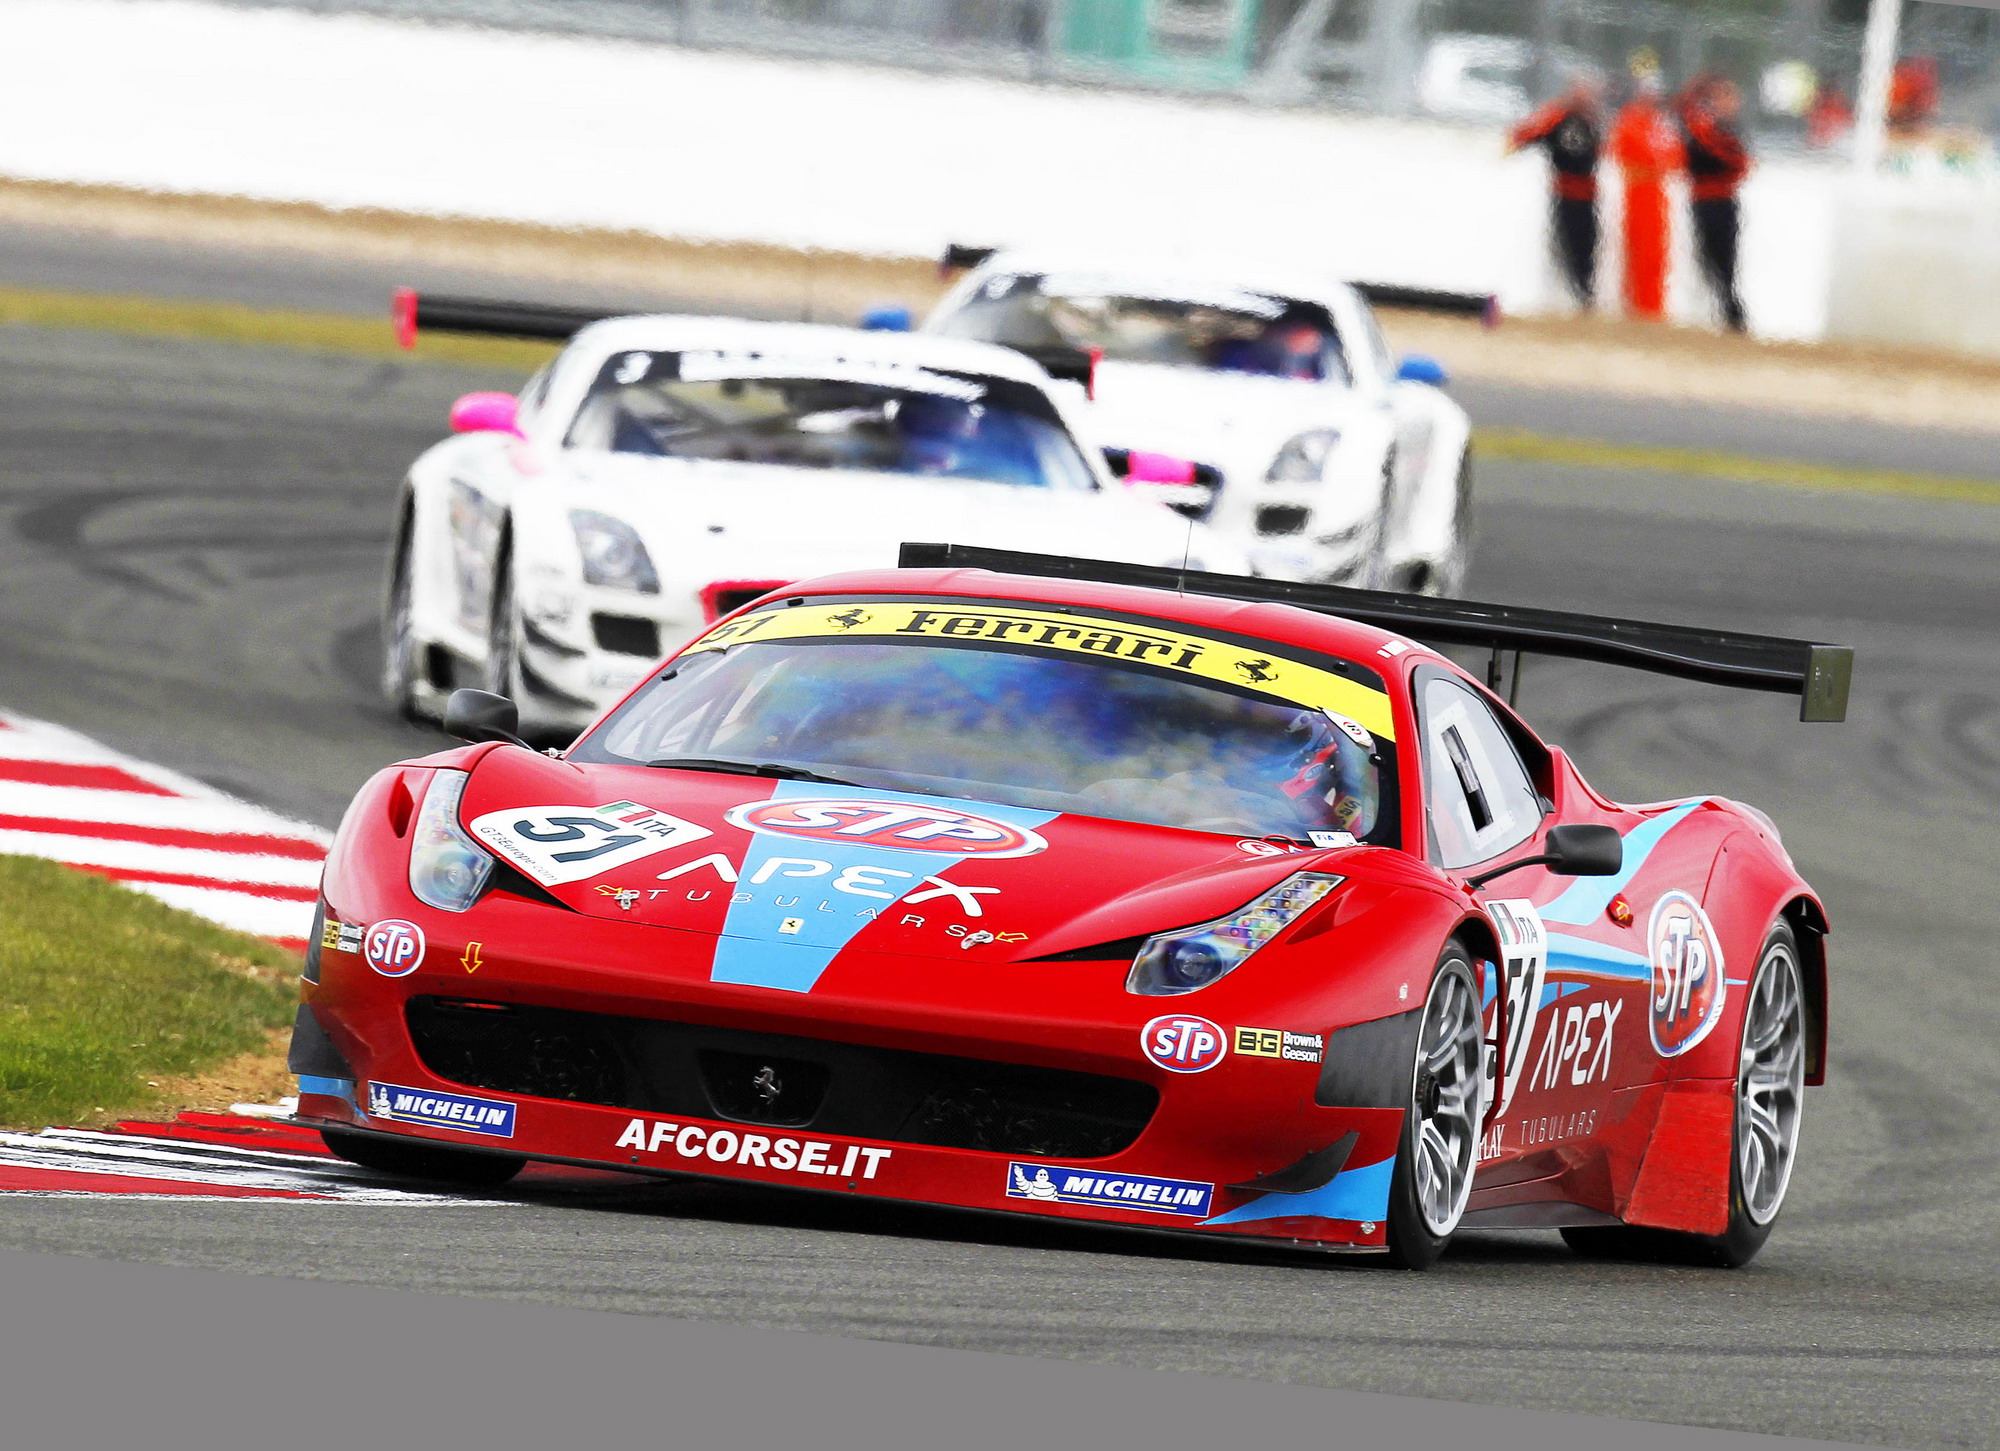 2011 ferrari f458 gt3 by stp review gallery top speed. Black Bedroom Furniture Sets. Home Design Ideas